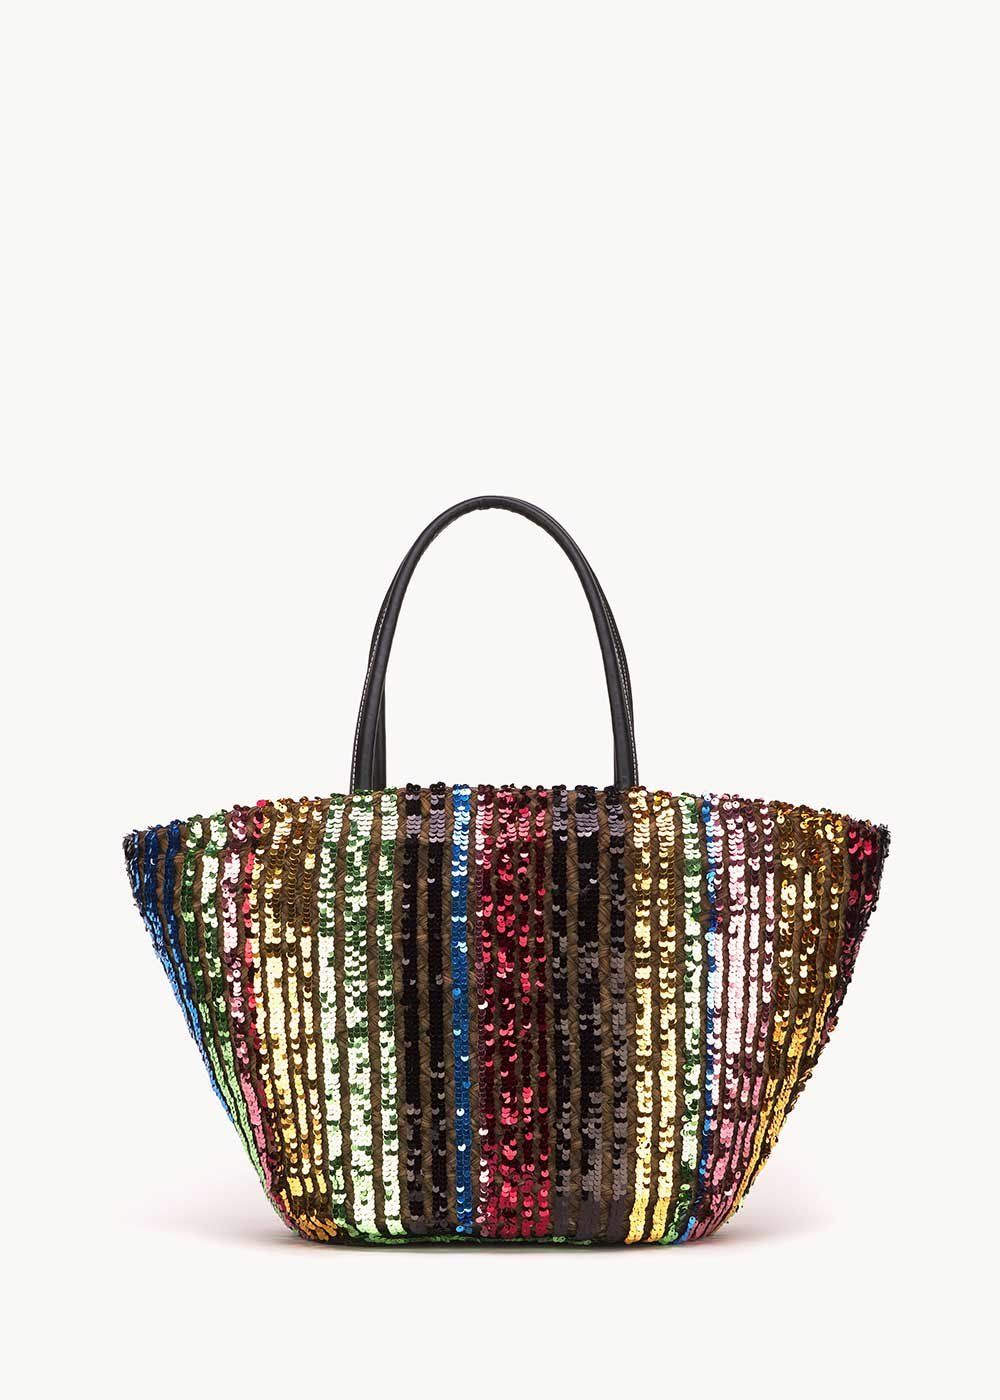 Borsa mare Baloon con paillettes multicolor - Black / Stripes - Donna